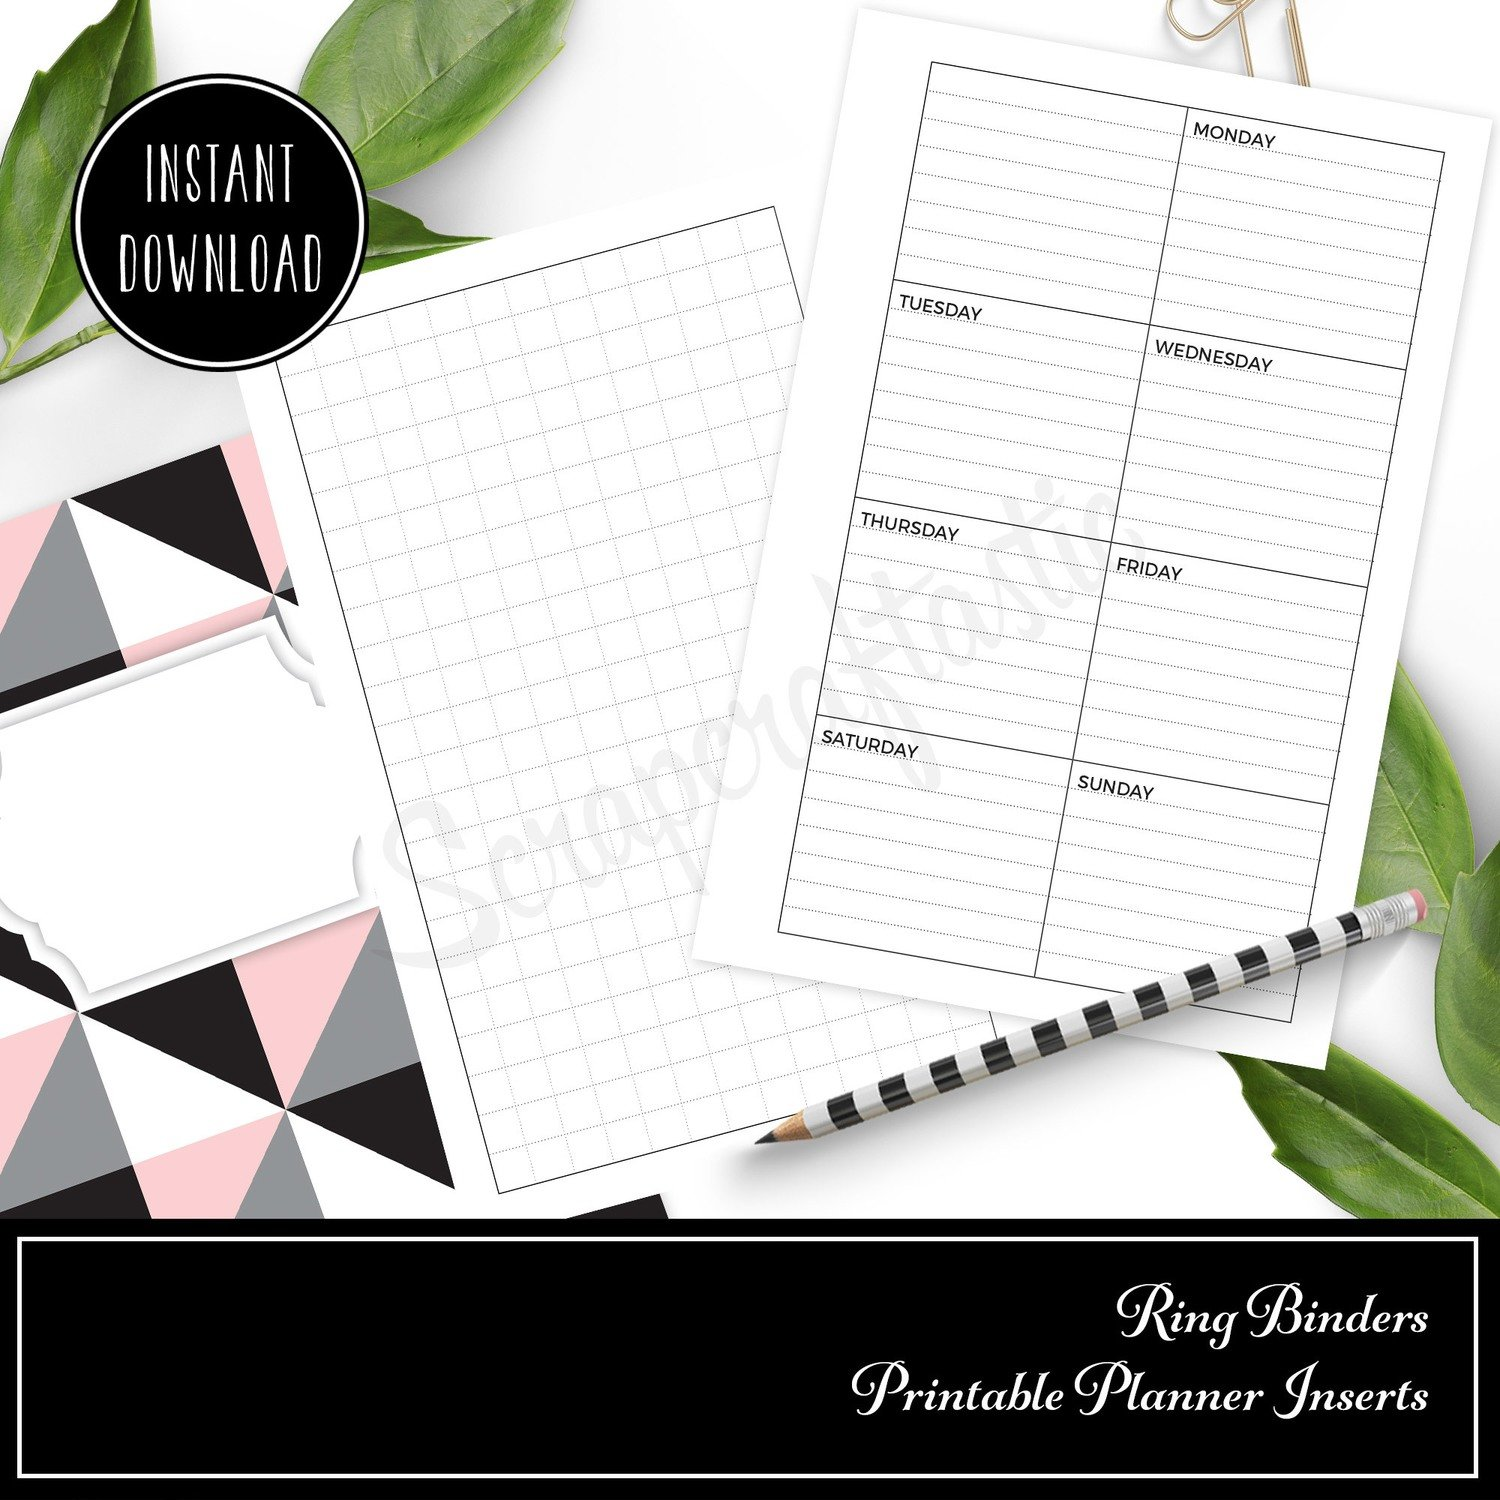 PERSONAL RINGS - Grid and Boxed Lined Undated Weekly Printable Planner Insert